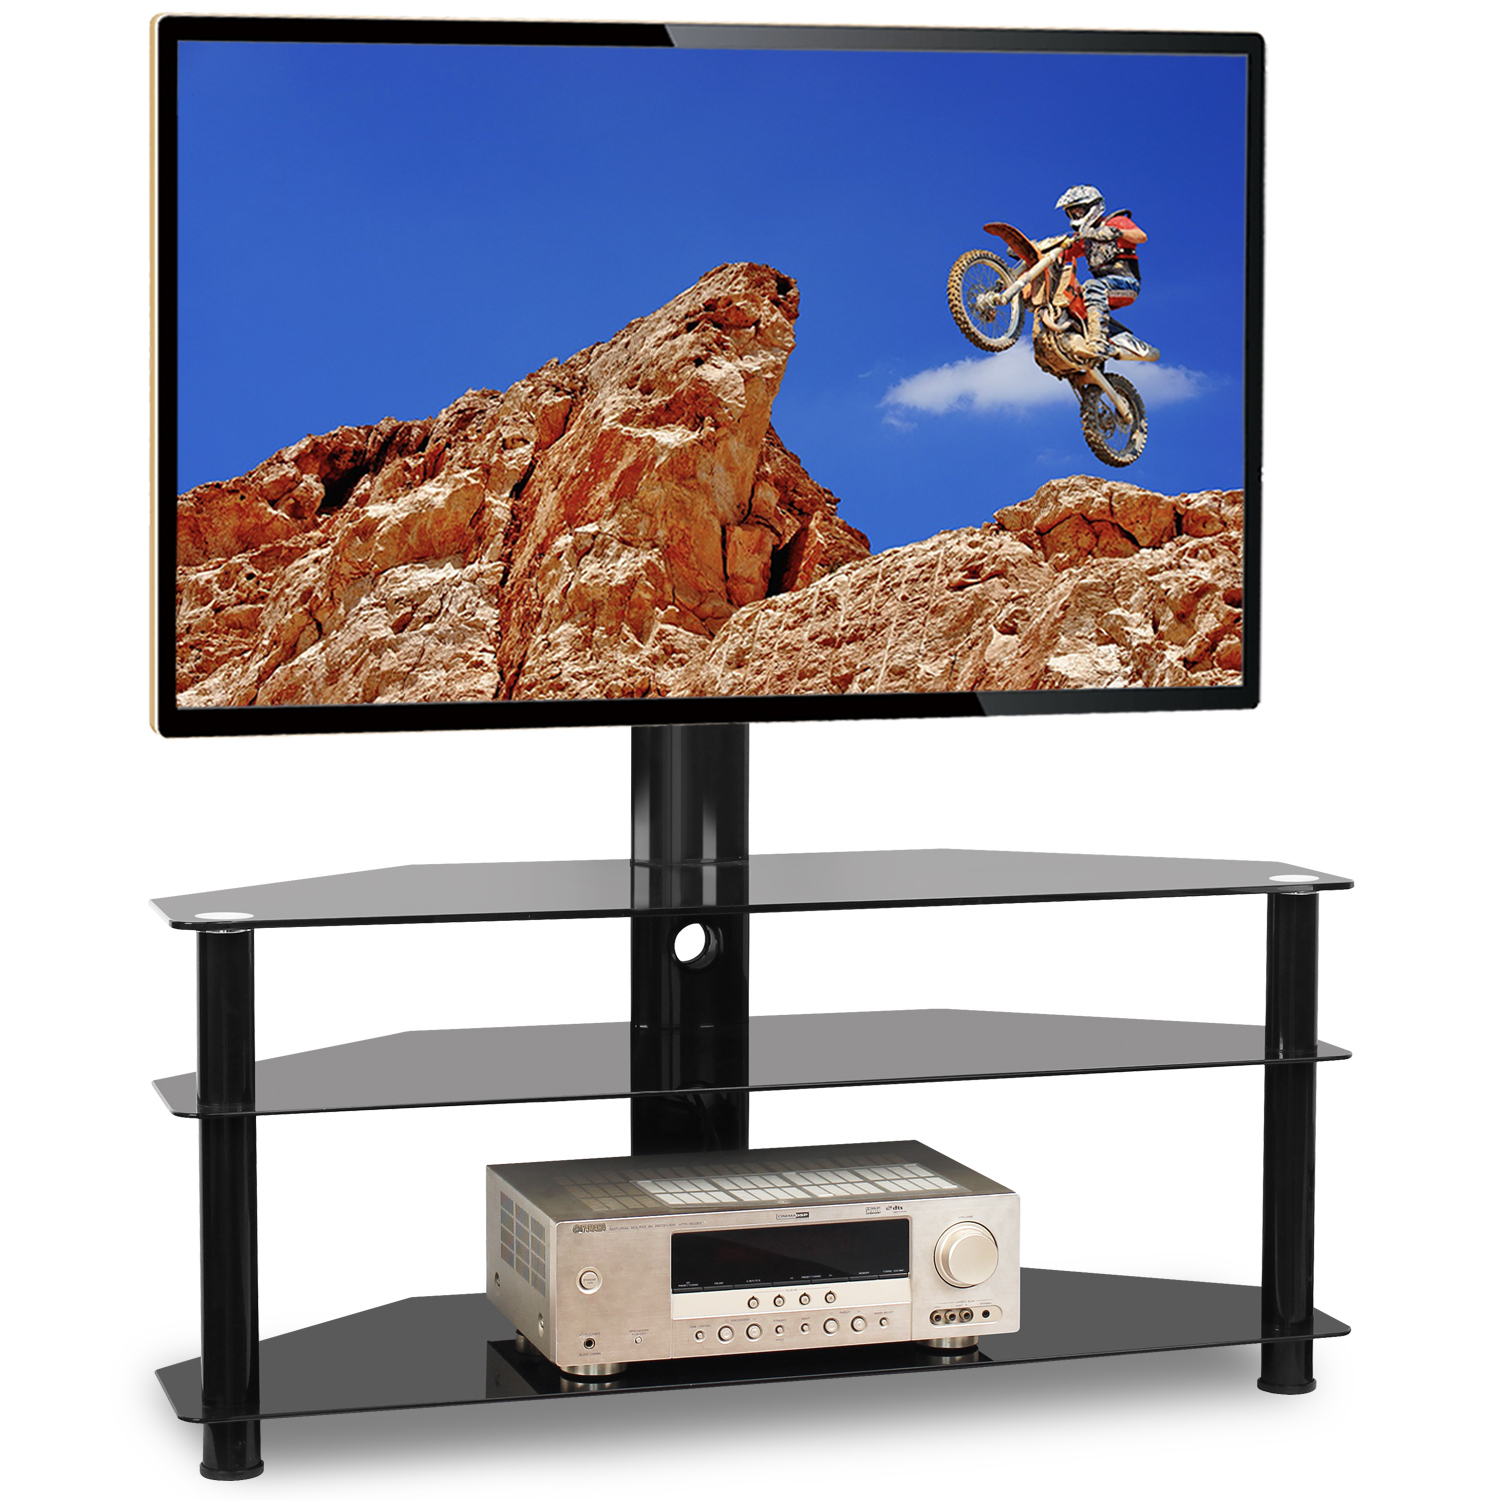 """Mainor Tv Stands For Tvs Up To 70"""" Within Widely Used 5rcom Floor Tv Stand With Swivel Mount For Flat Curved (View 21 of 25)"""